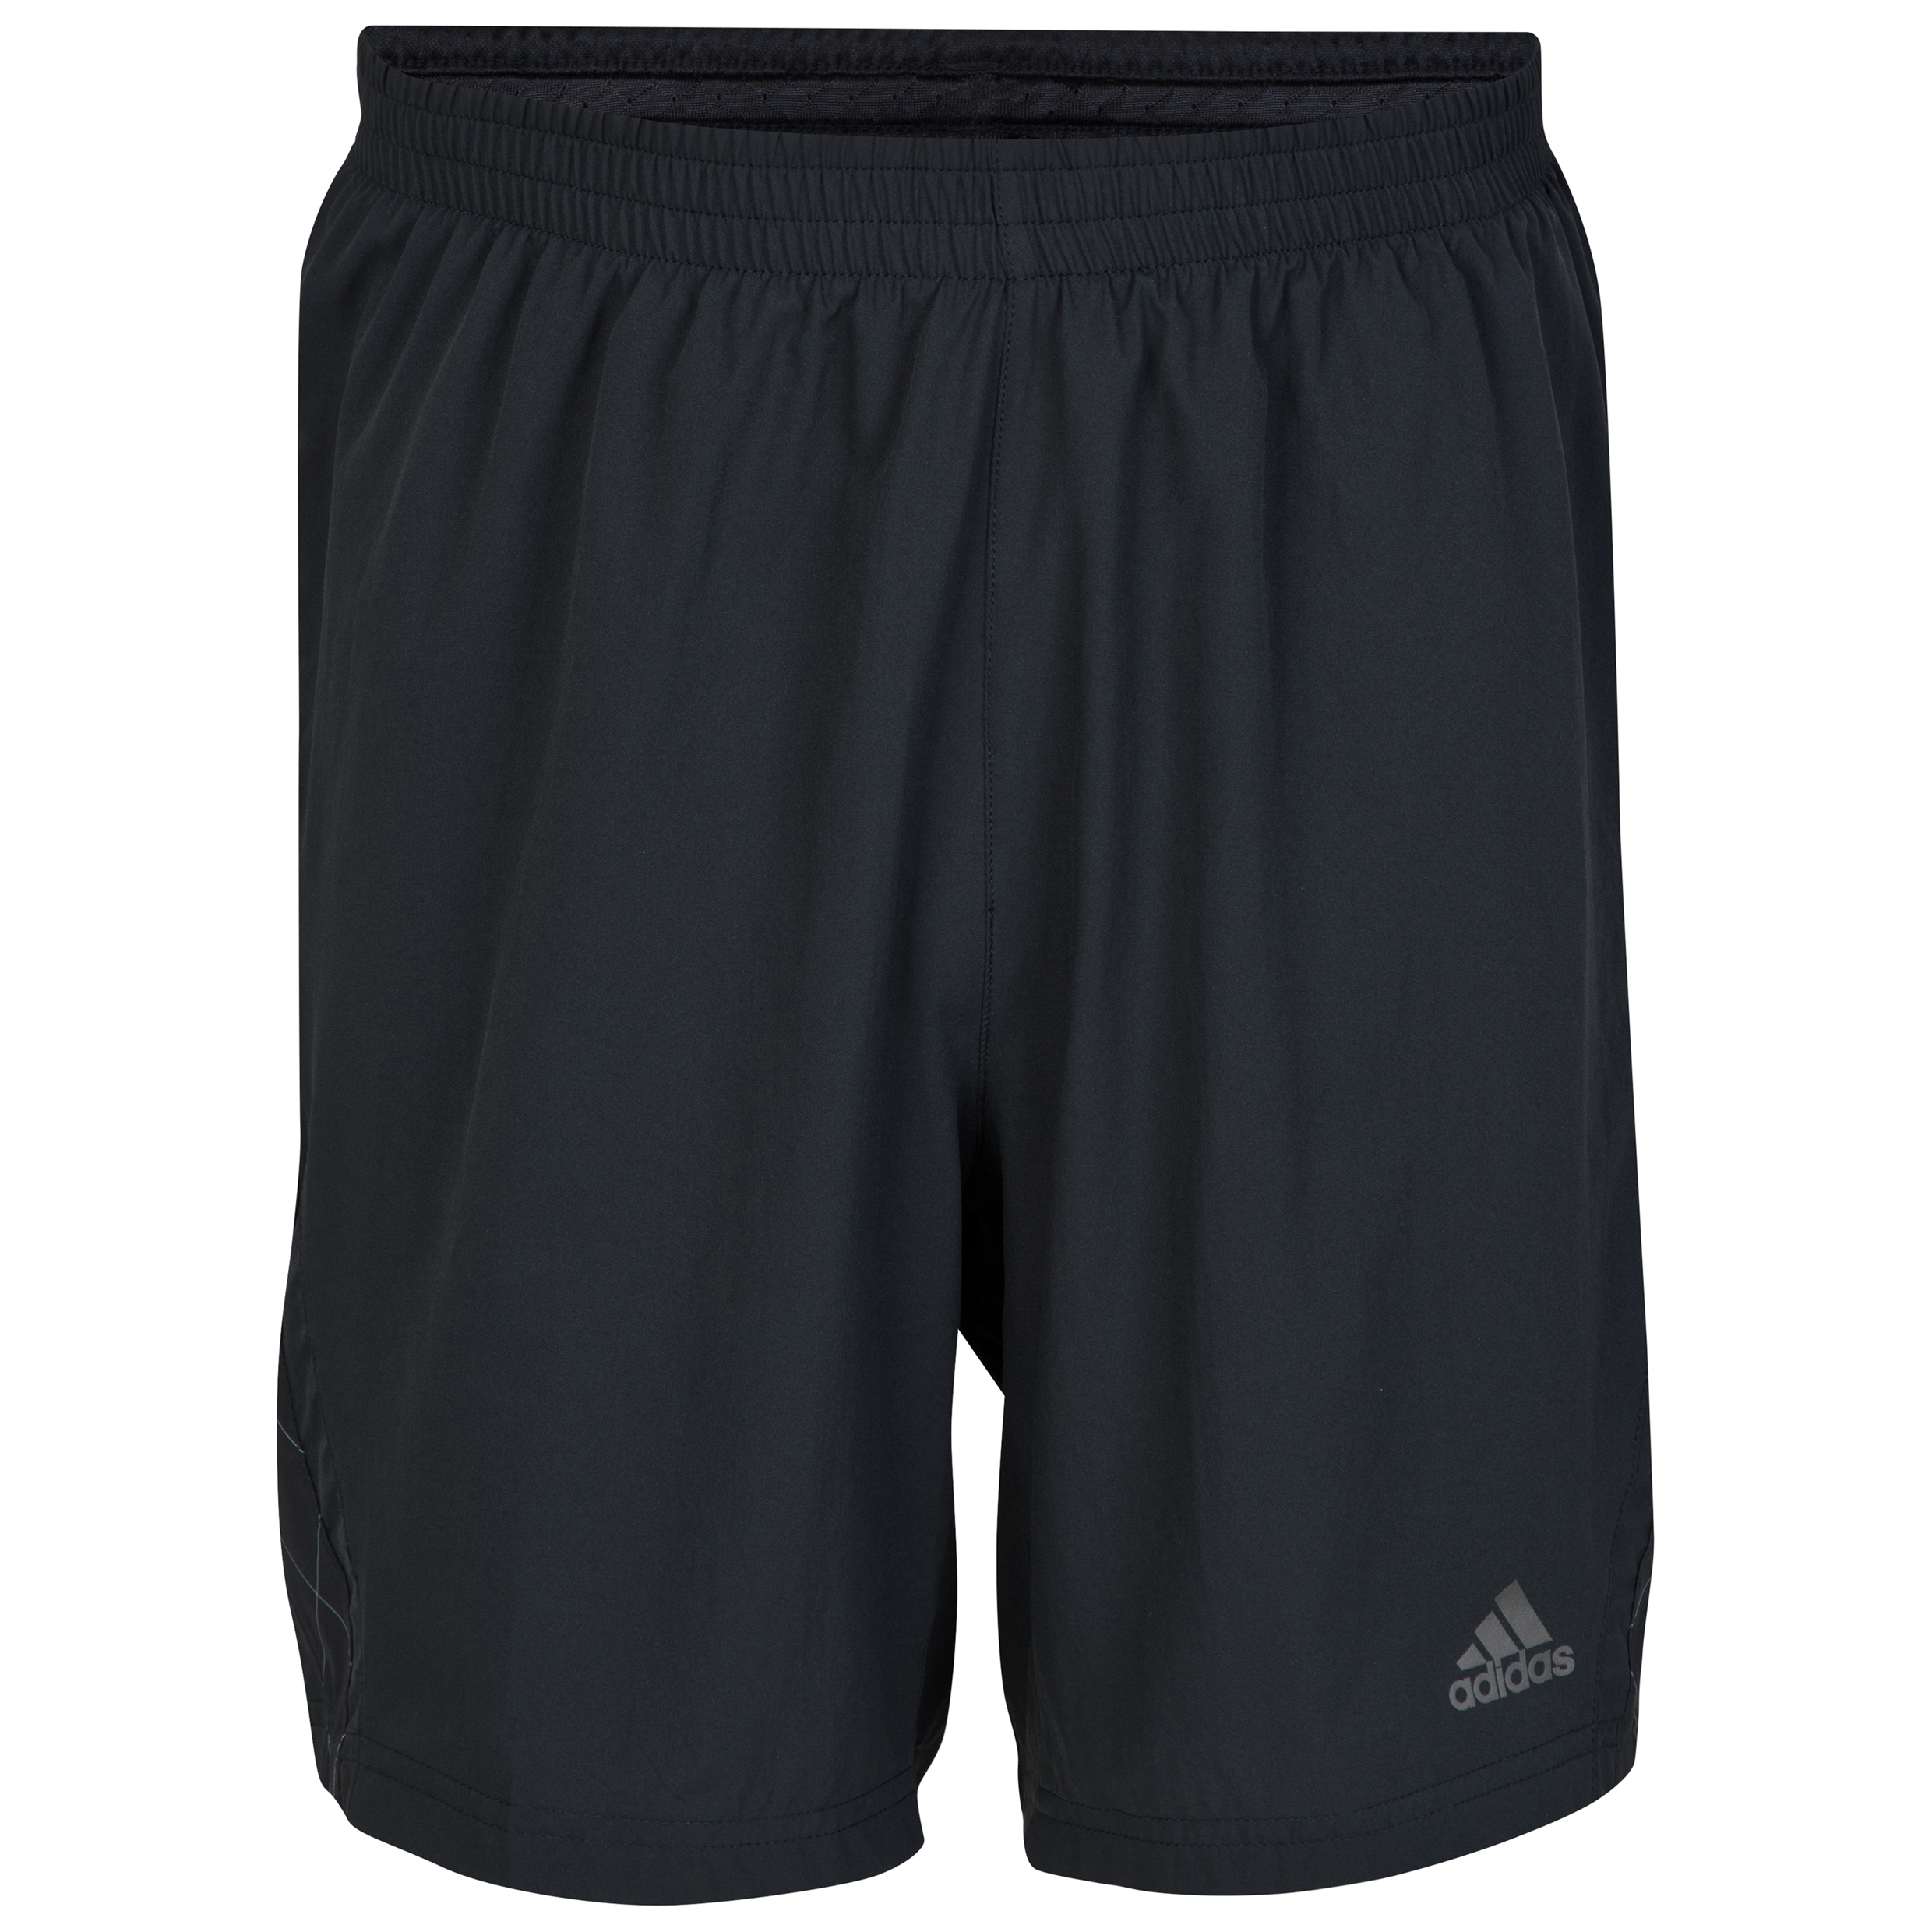 Adidas Supernova 7 Short Black